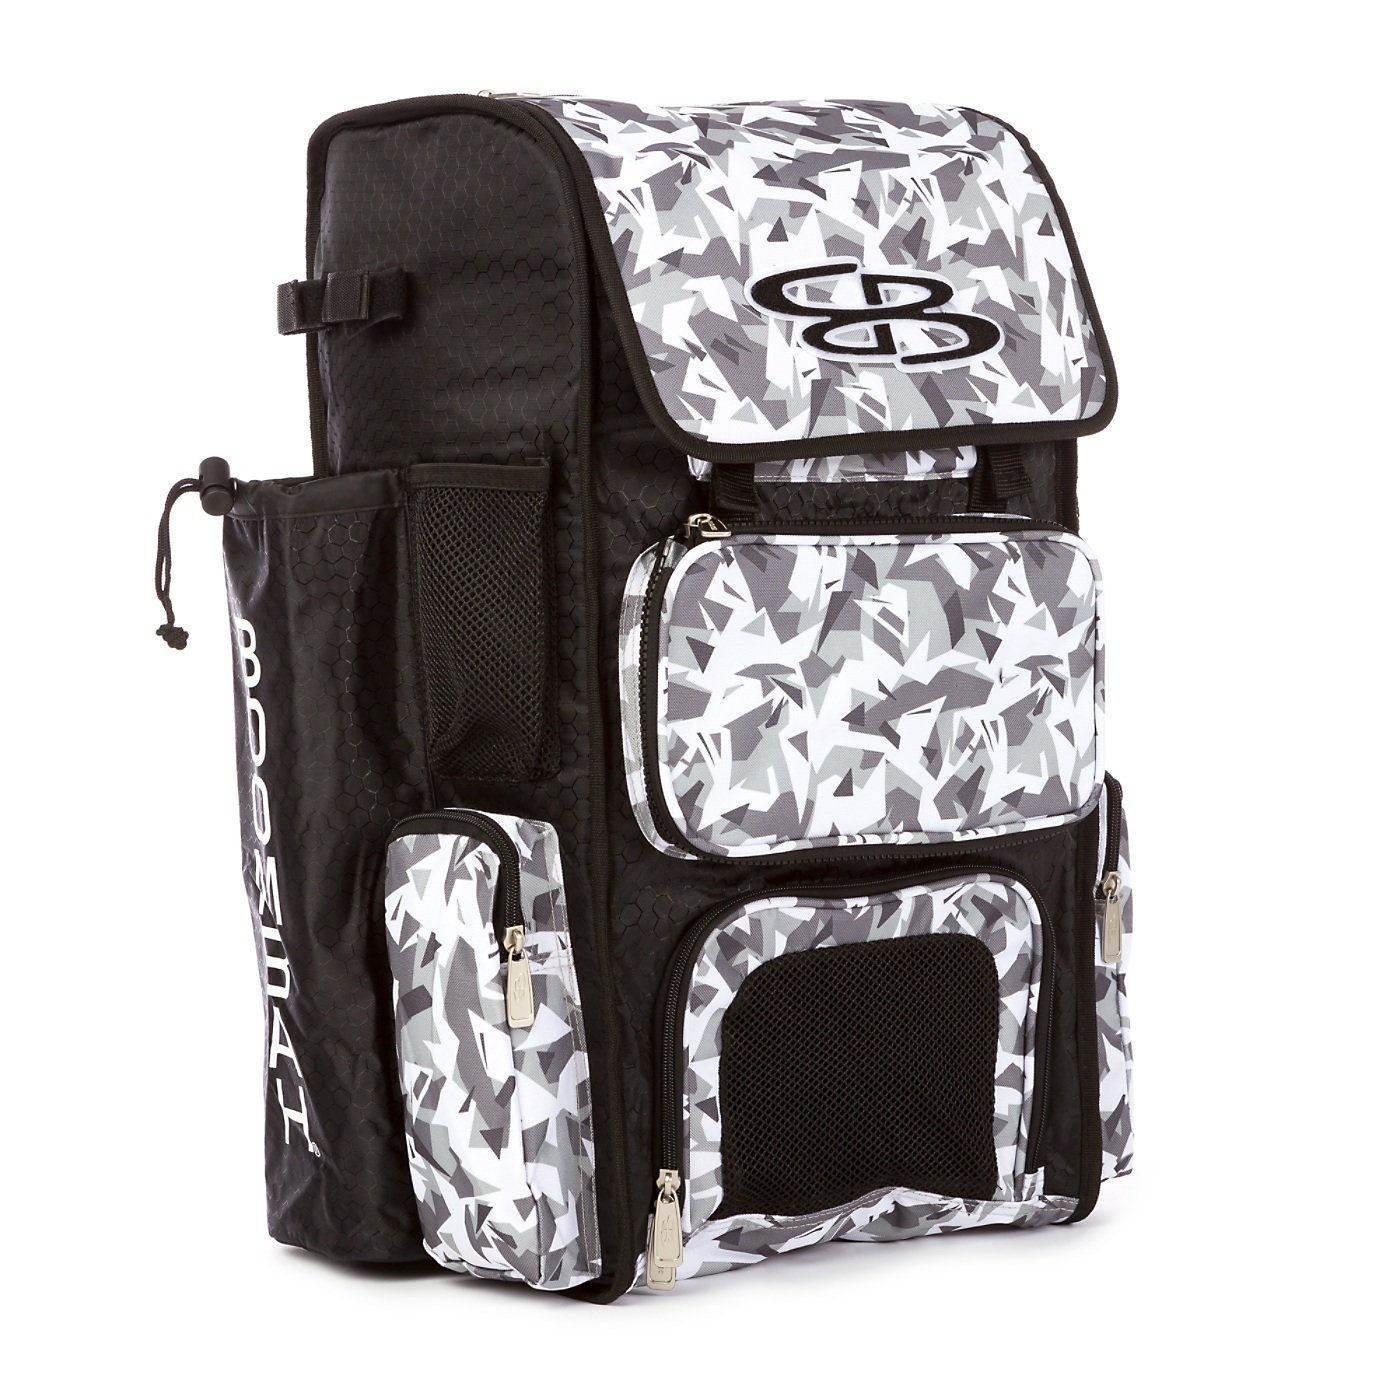 Boombah Superpack Bat Pack -Backpack Version (no wheels)